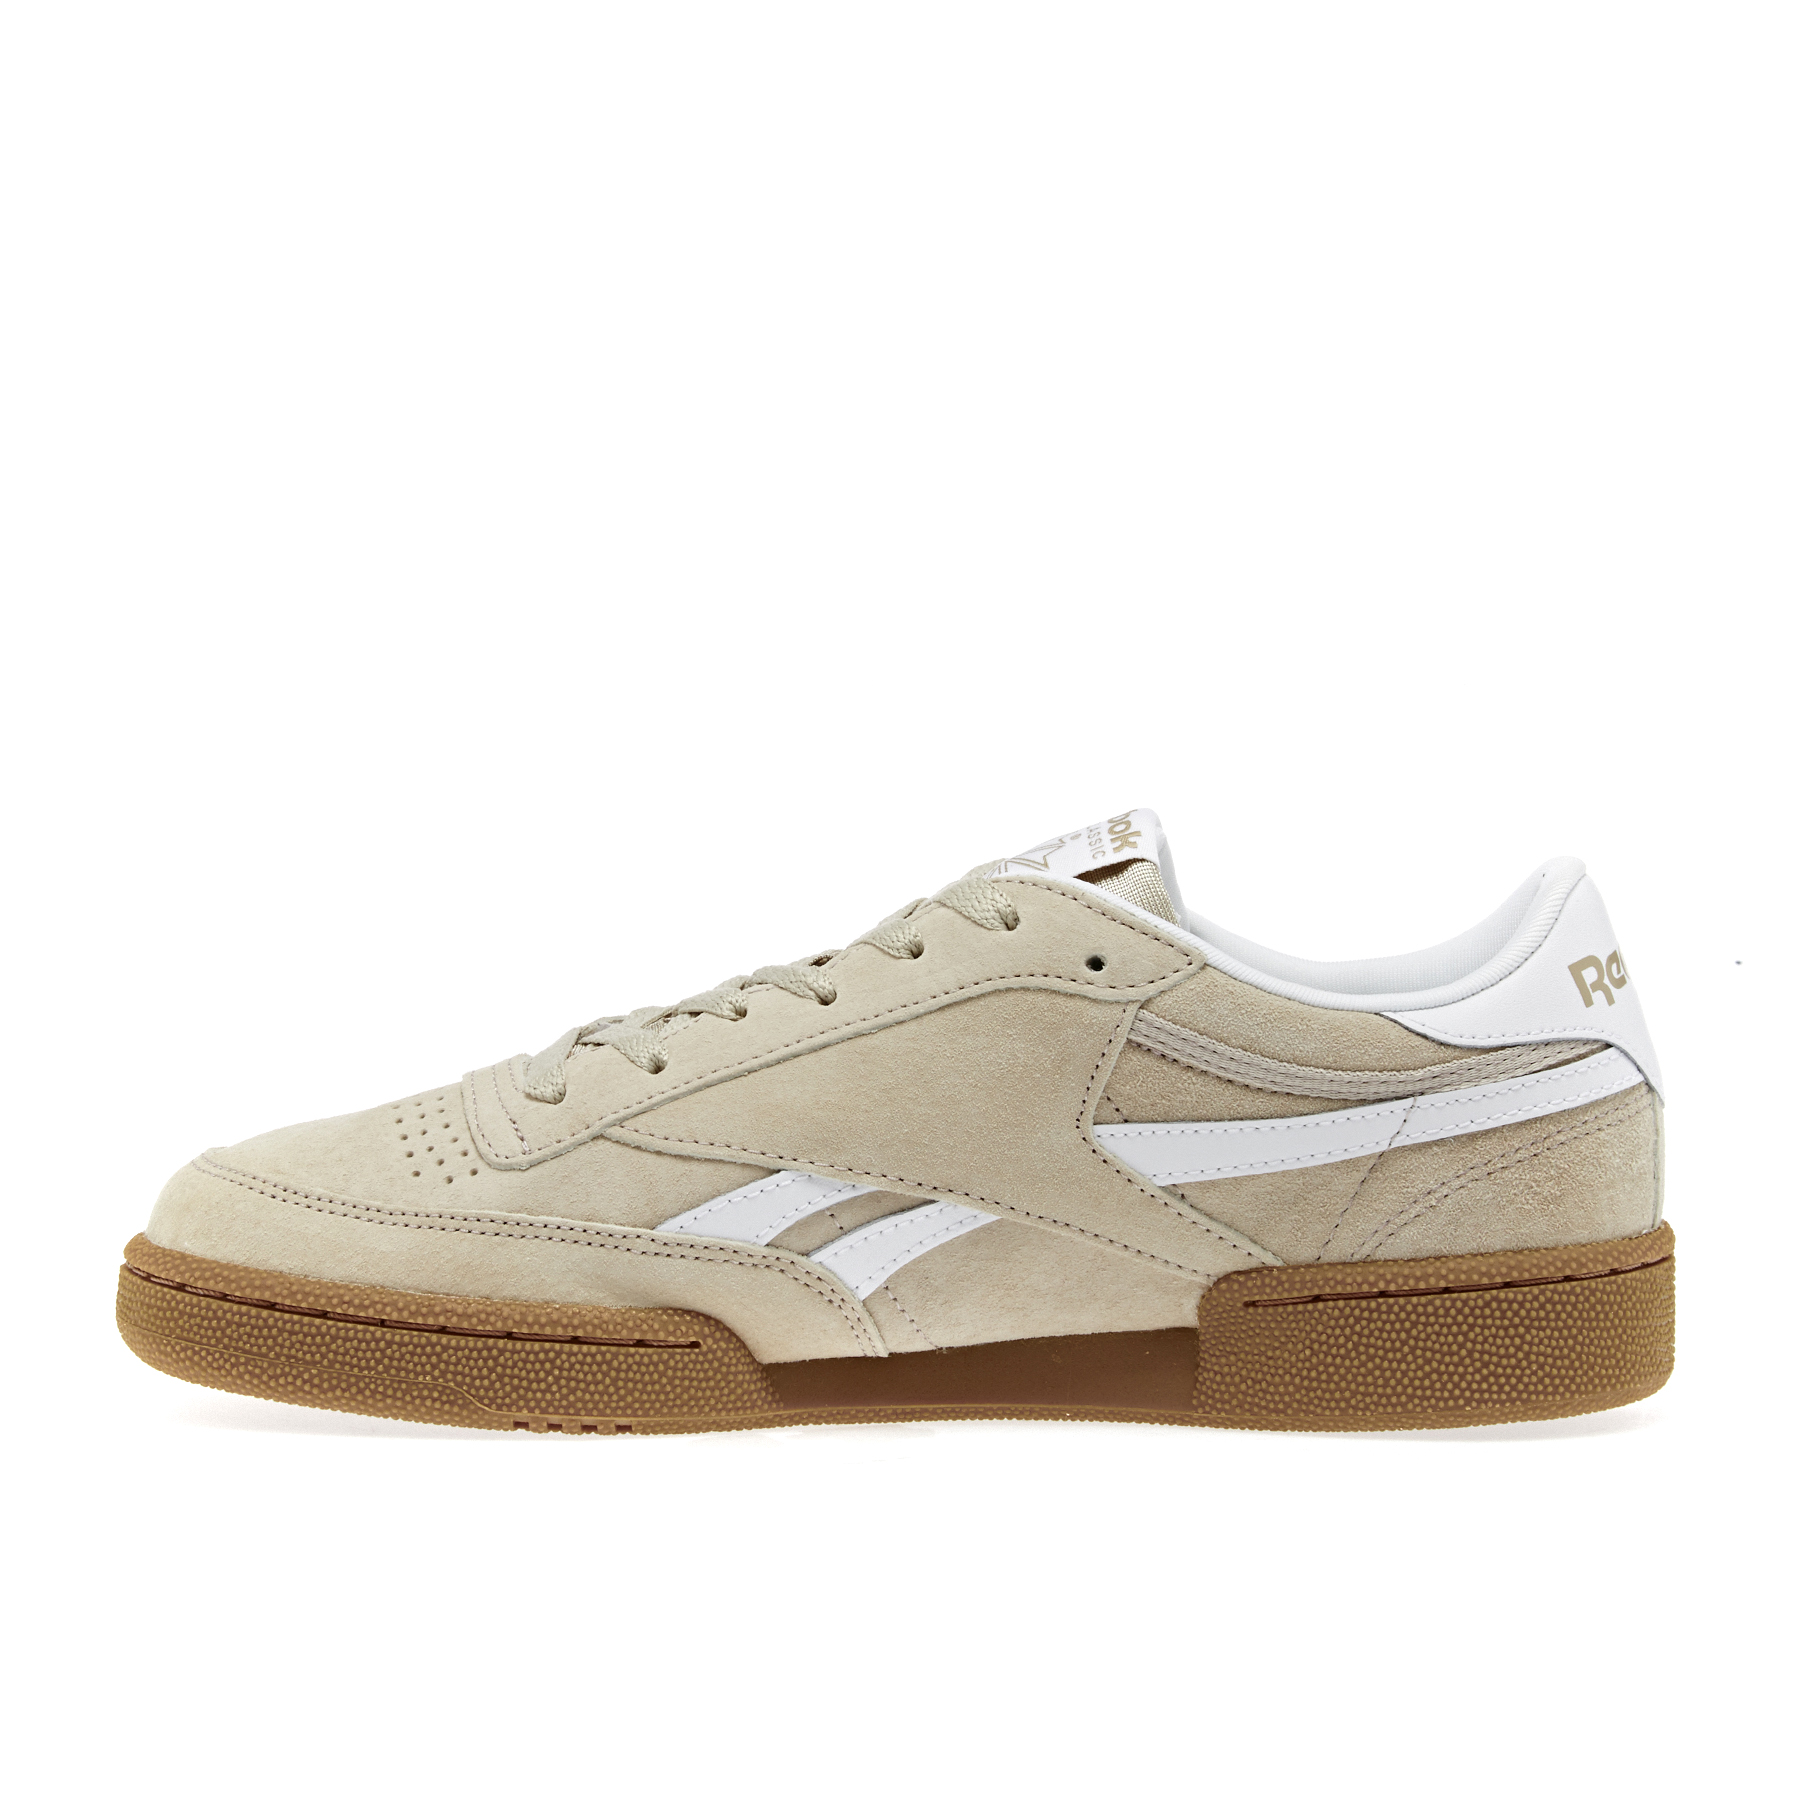 Reebok Revenge Plus Mu Shoes Free Delivery options on All